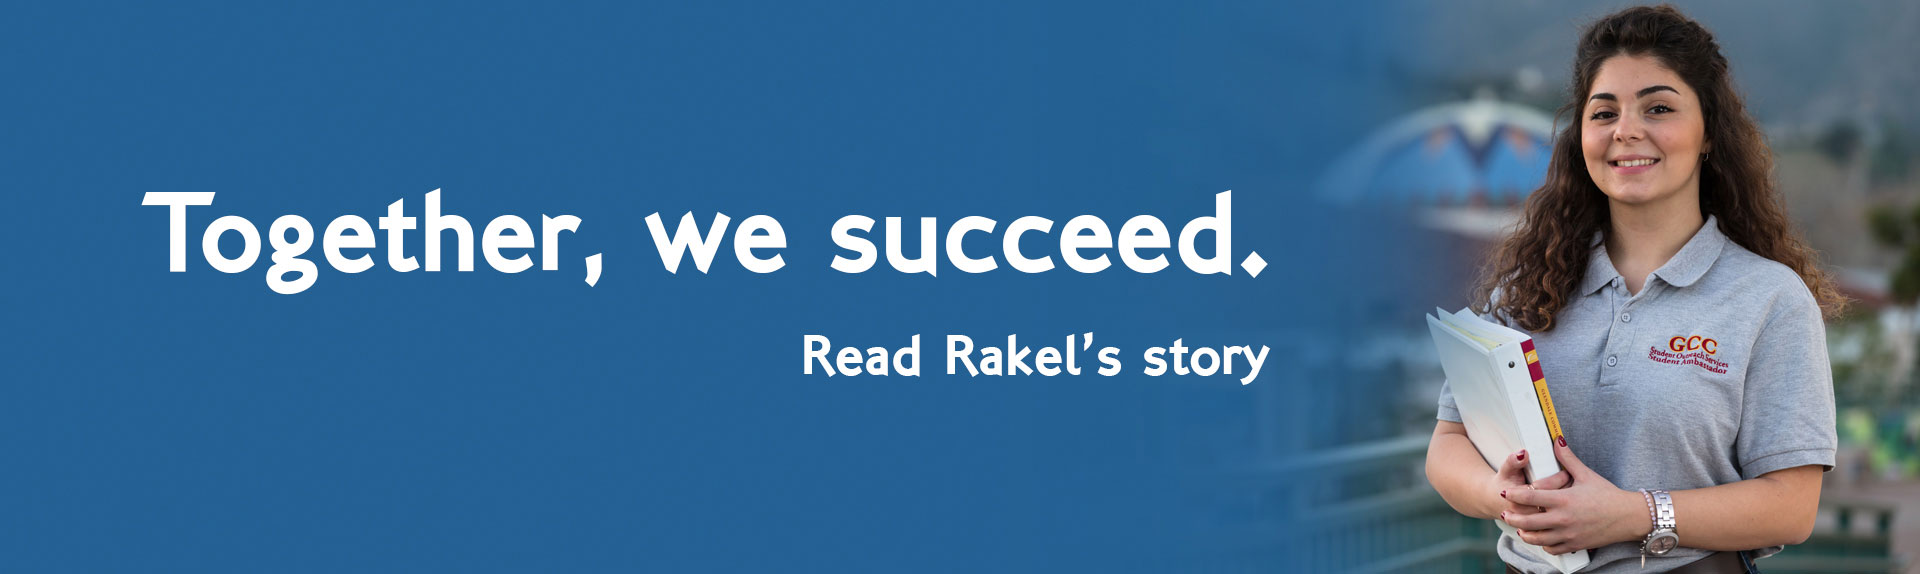 Together, we succeed. Read Rakel's story